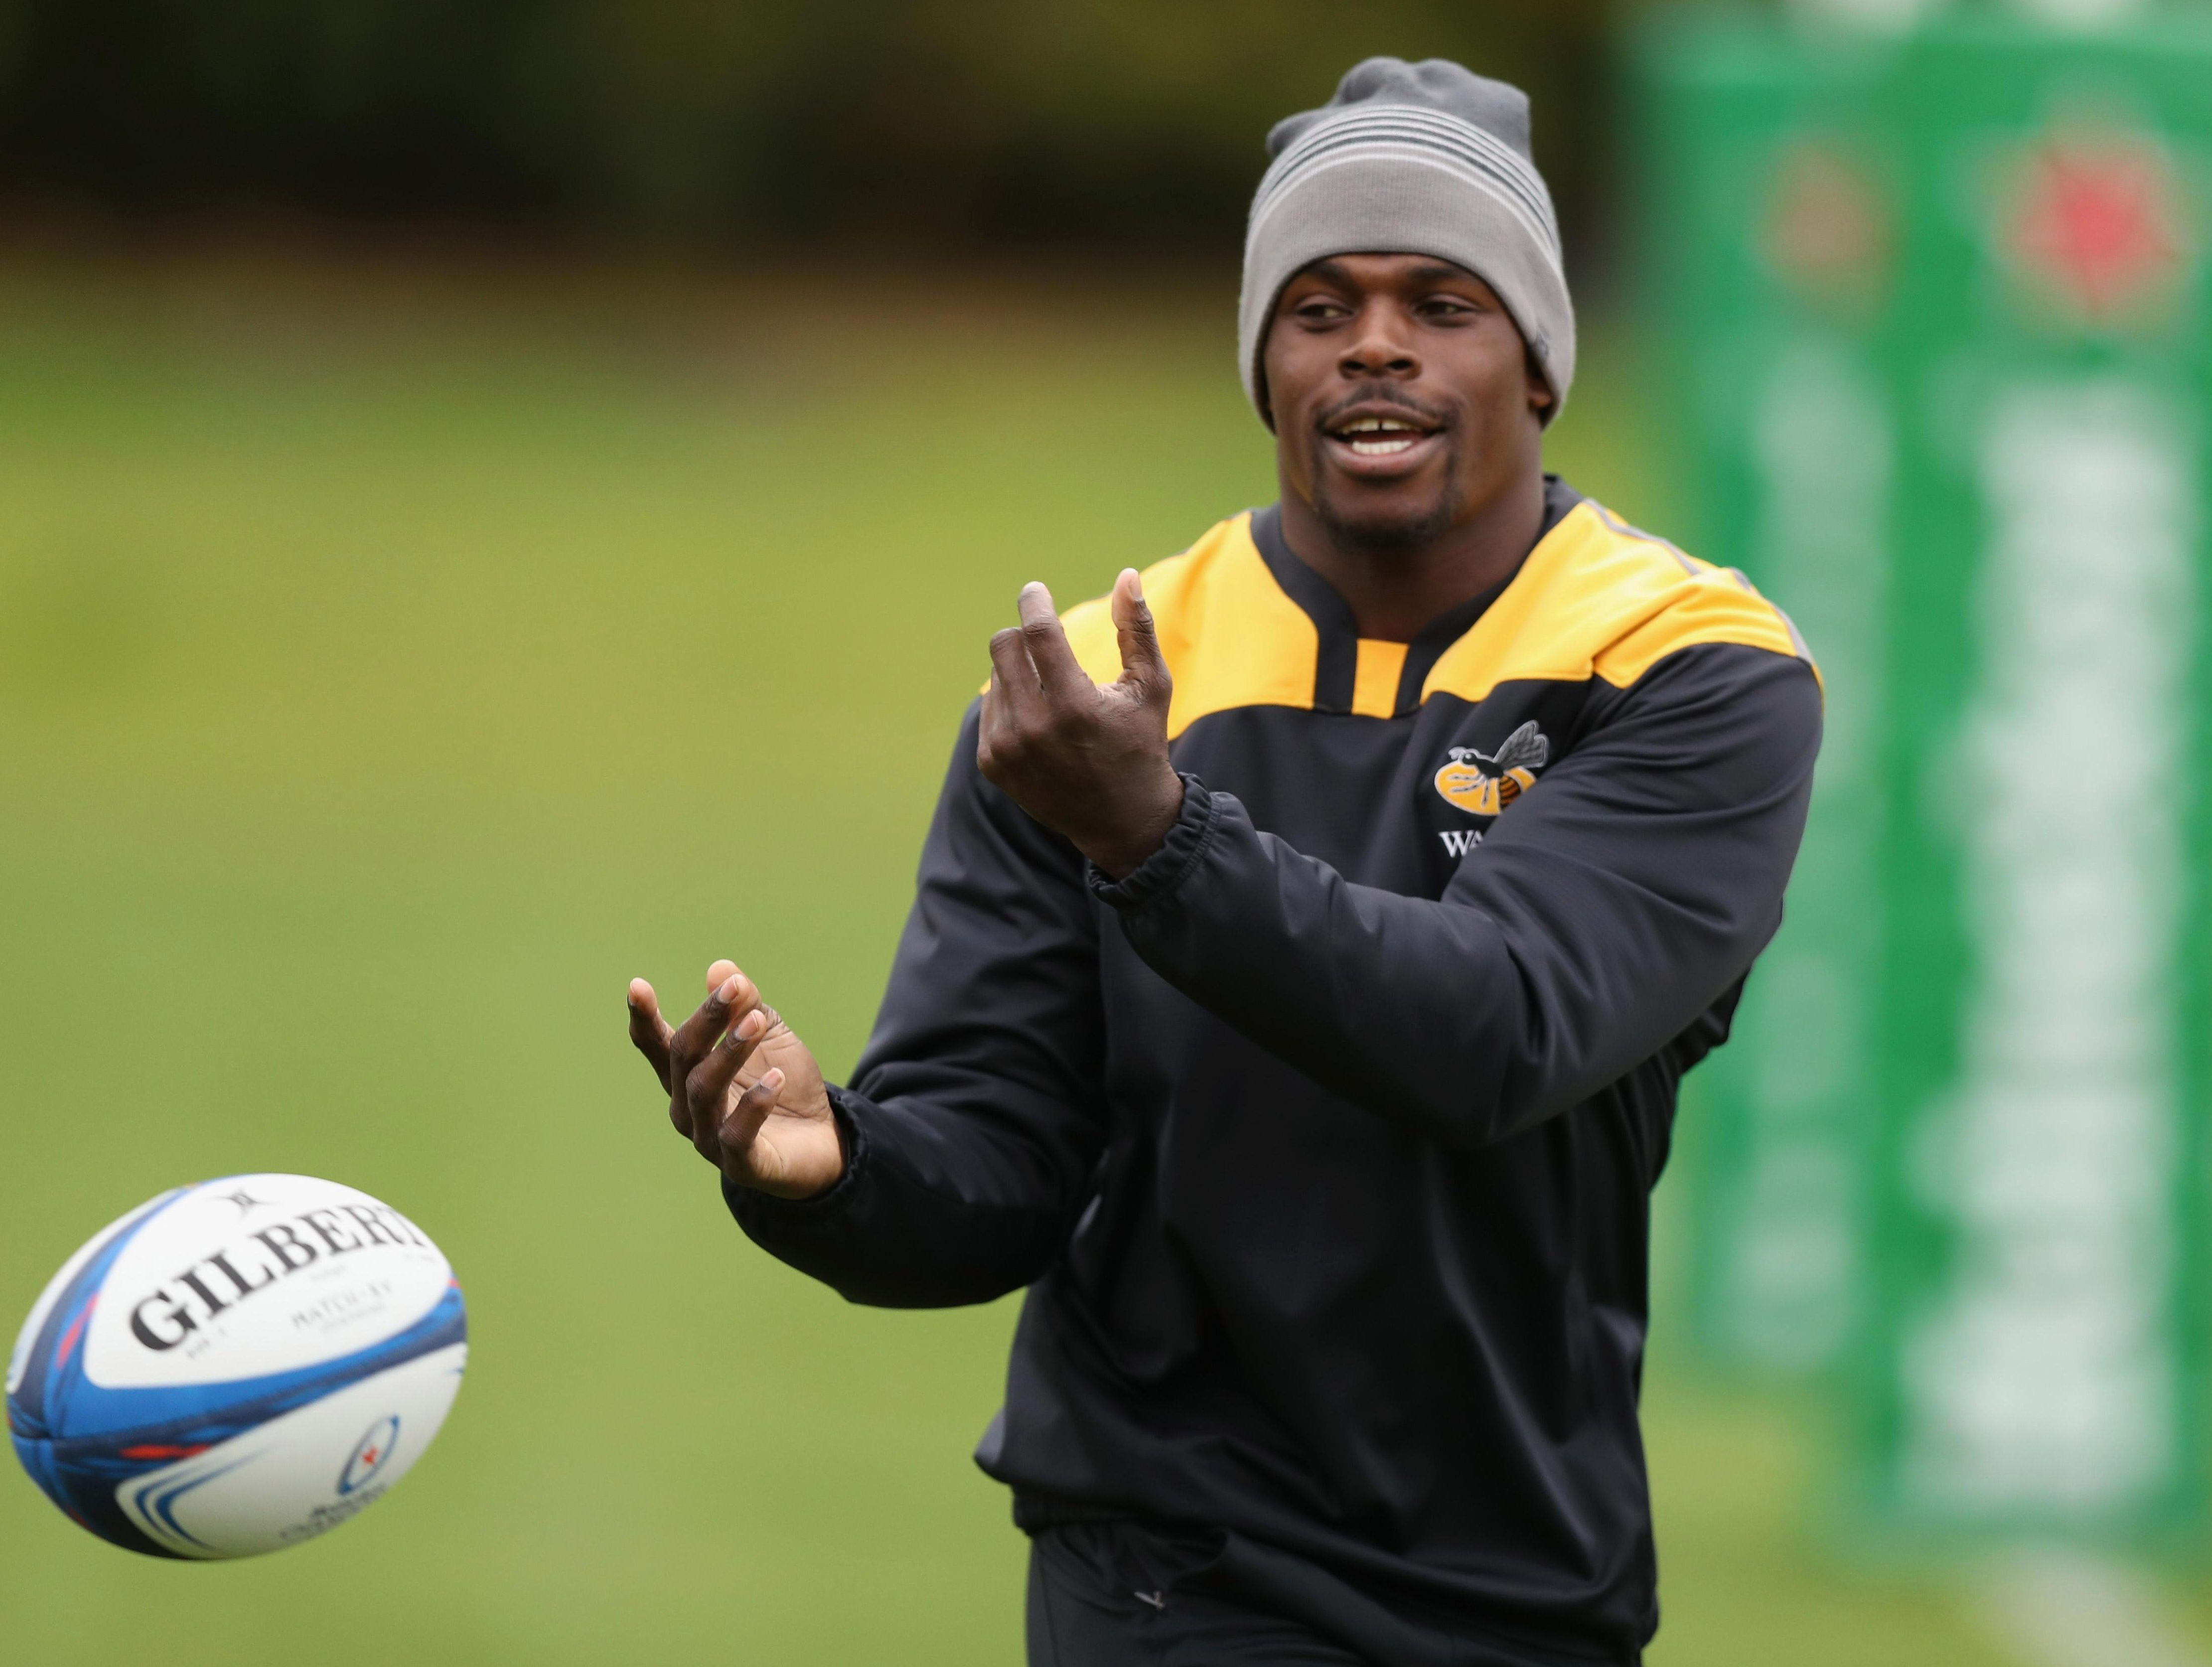 The Wasps winger has struggled to get a call up to the England squad